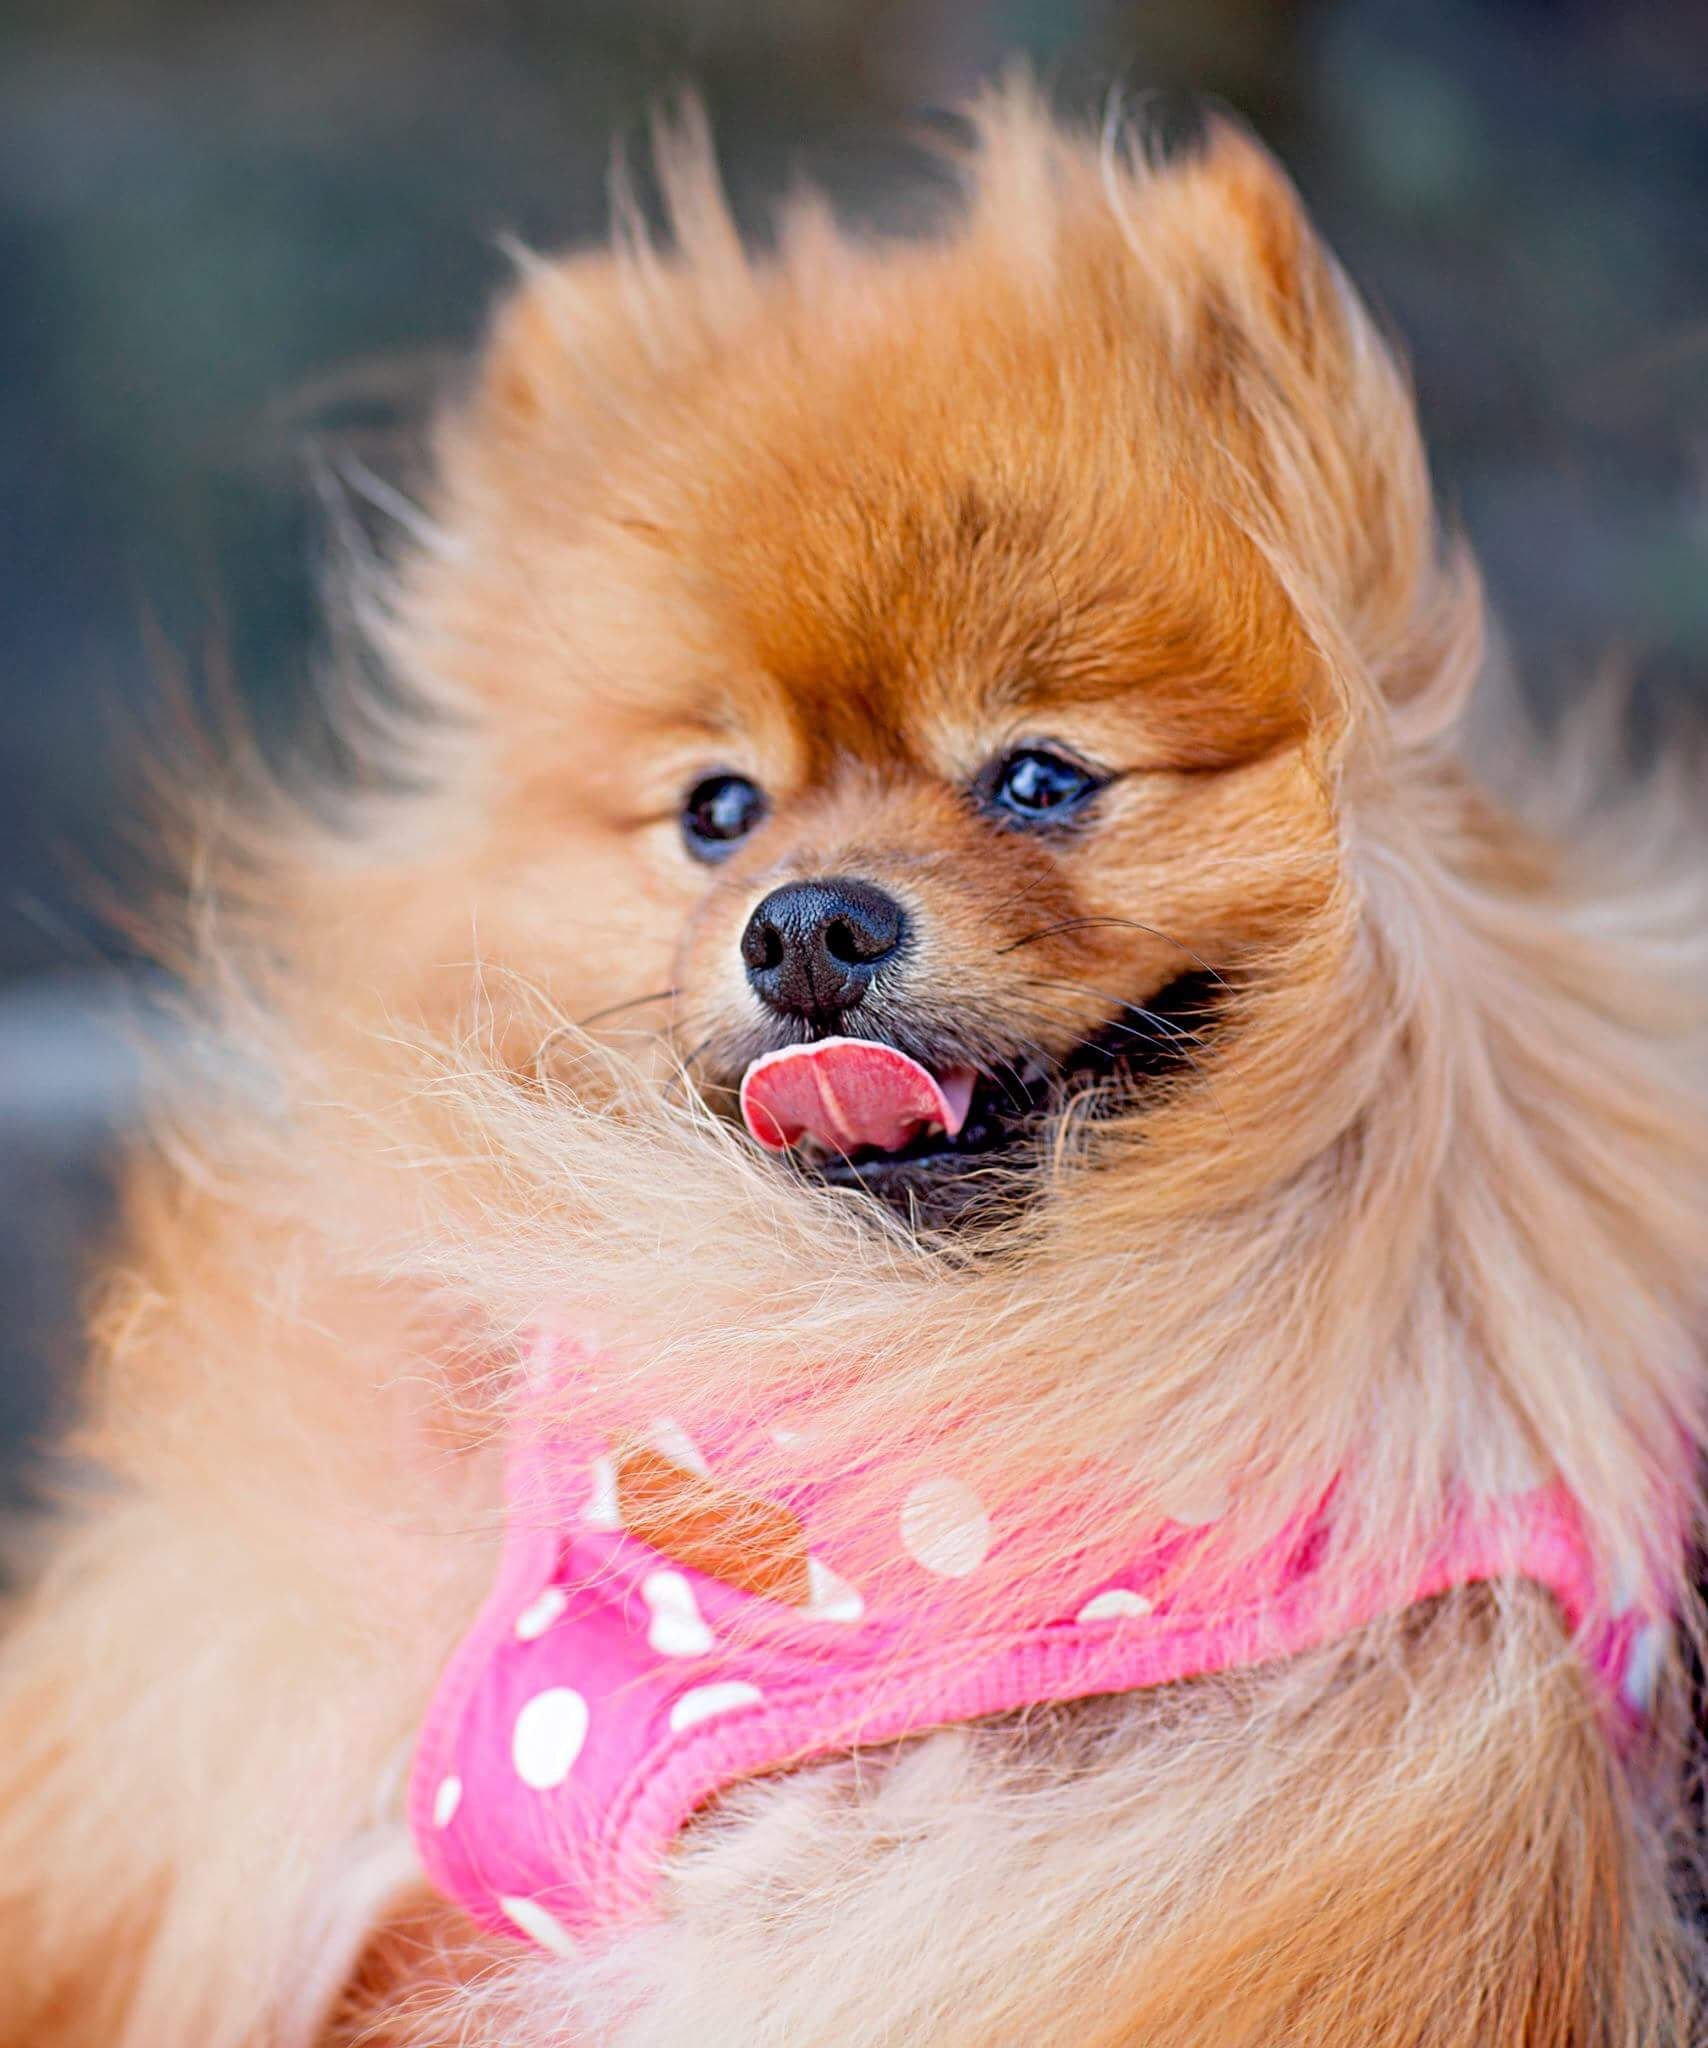 35 Cutest Pomeranian Puppies In 2020 Training Your Dog Cute Small Dogs Cute Dogs